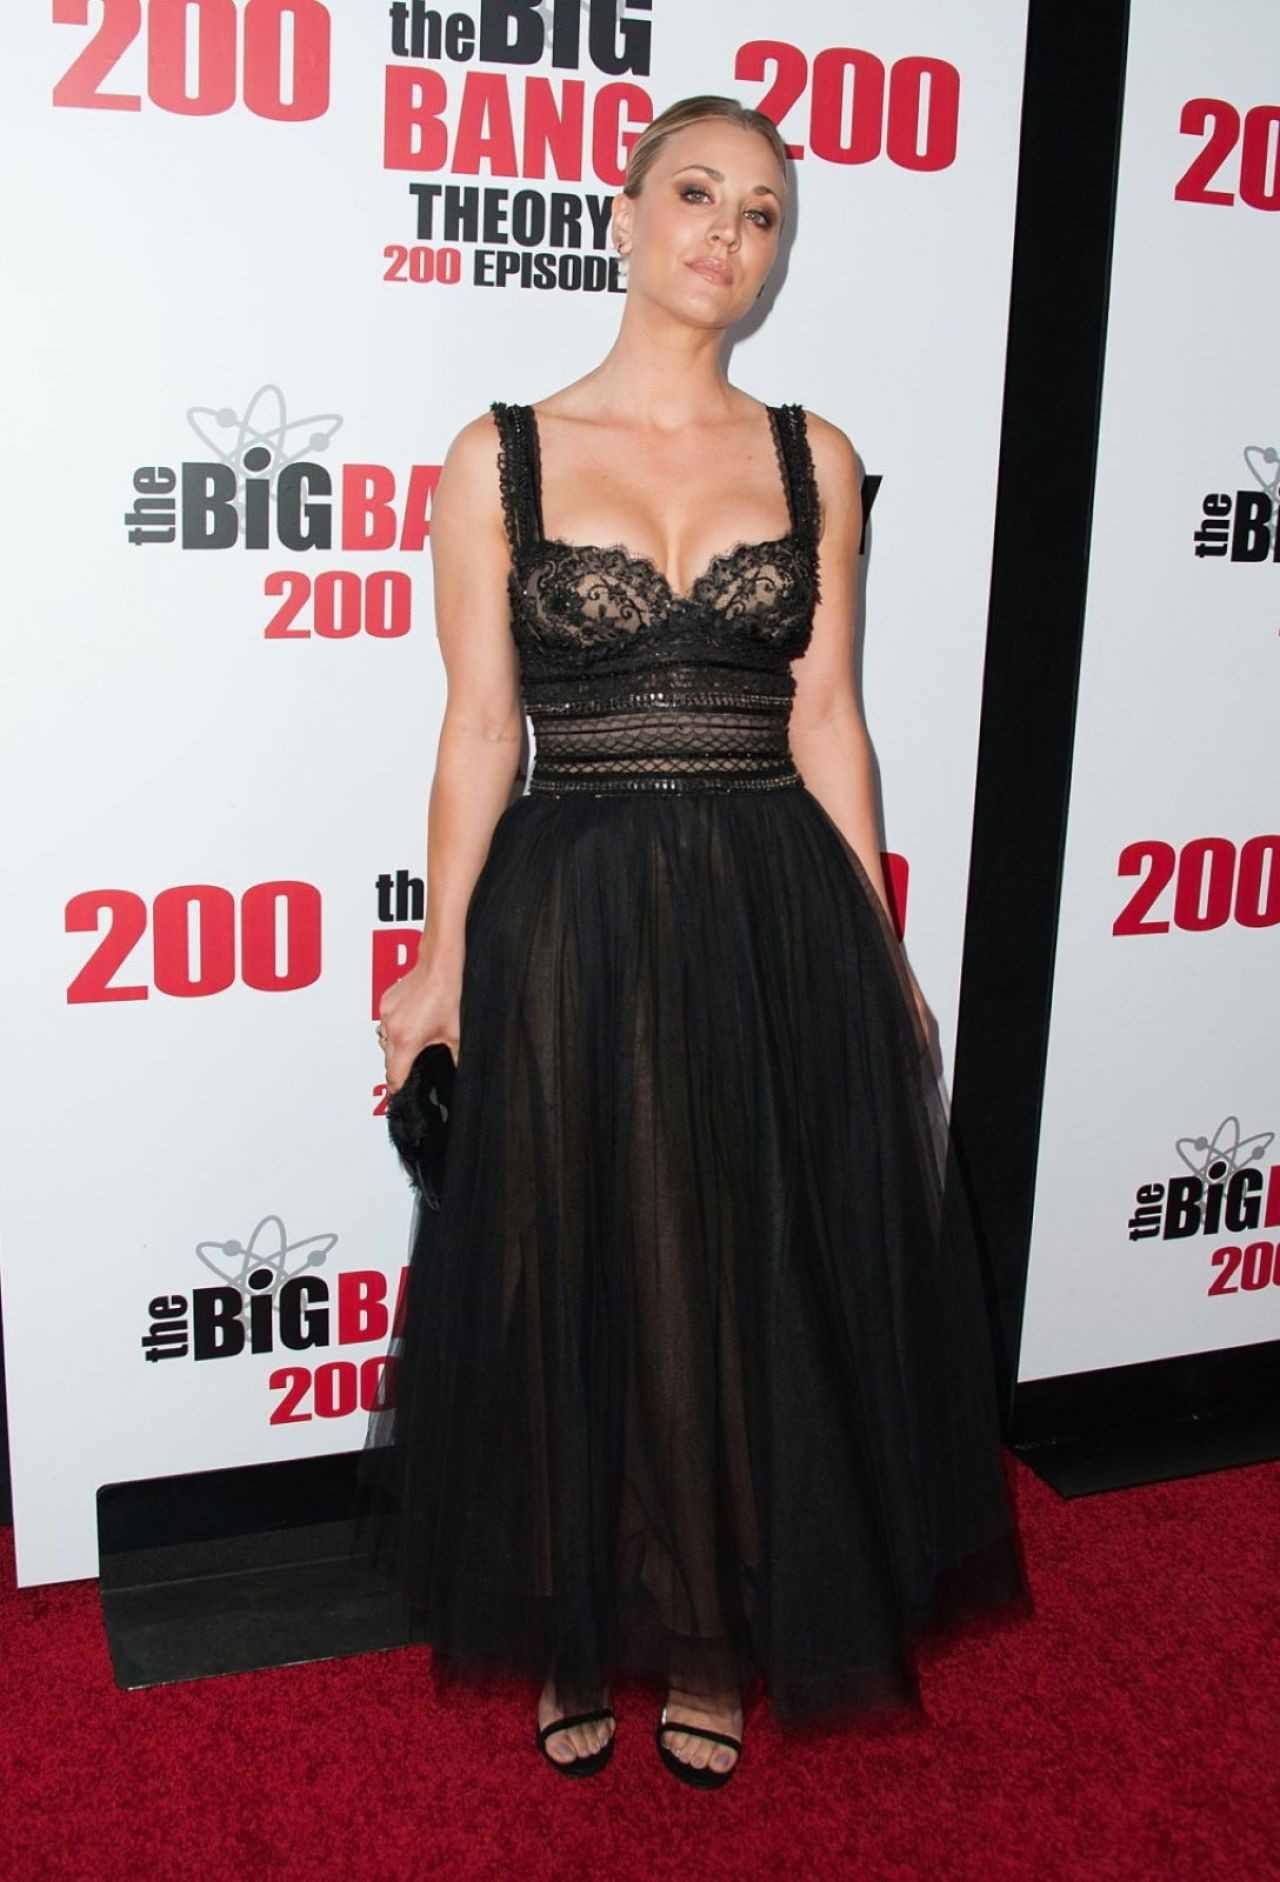 kaley-cuoco-cbs-s-the-big-bang-theory-celebrates-200th-episode-in-los-angeles-5